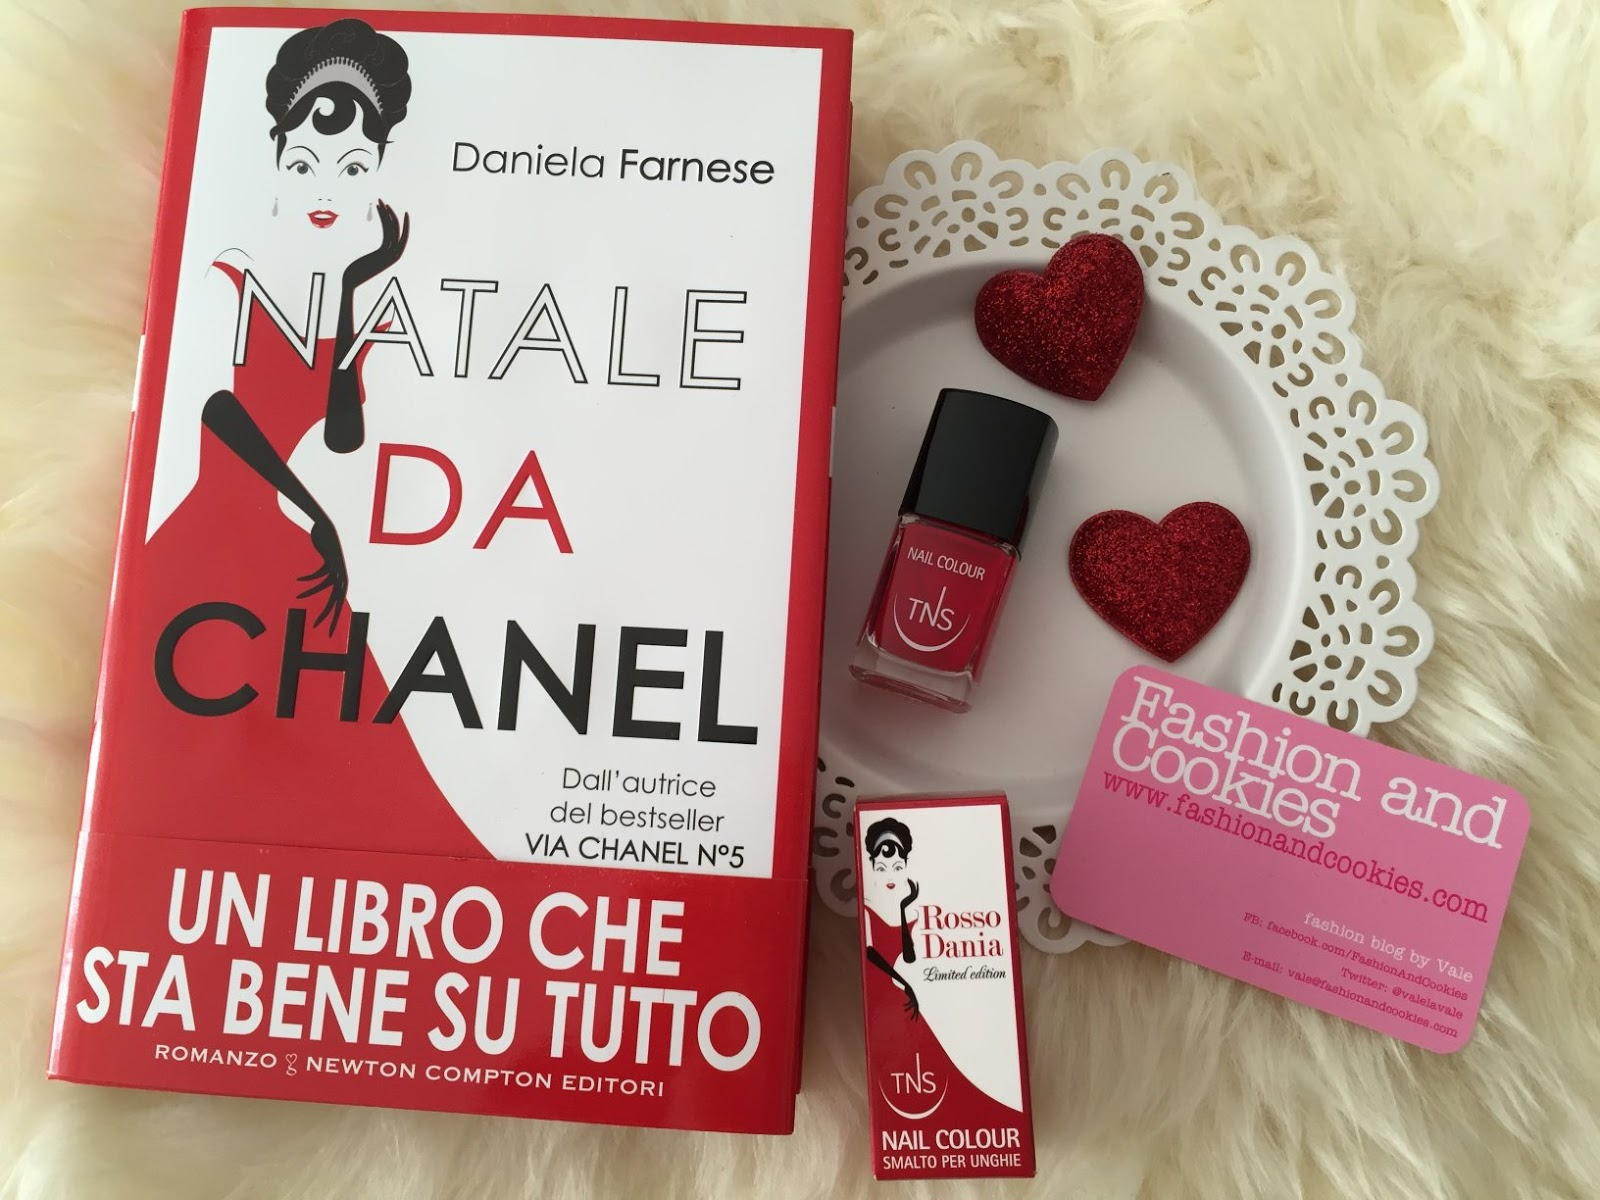 3060255dd1 Rosso Dania is a limited edition red nail polish by TNS Cosmetics in  collaboration with the writer Daniela Farnese for her latest novel